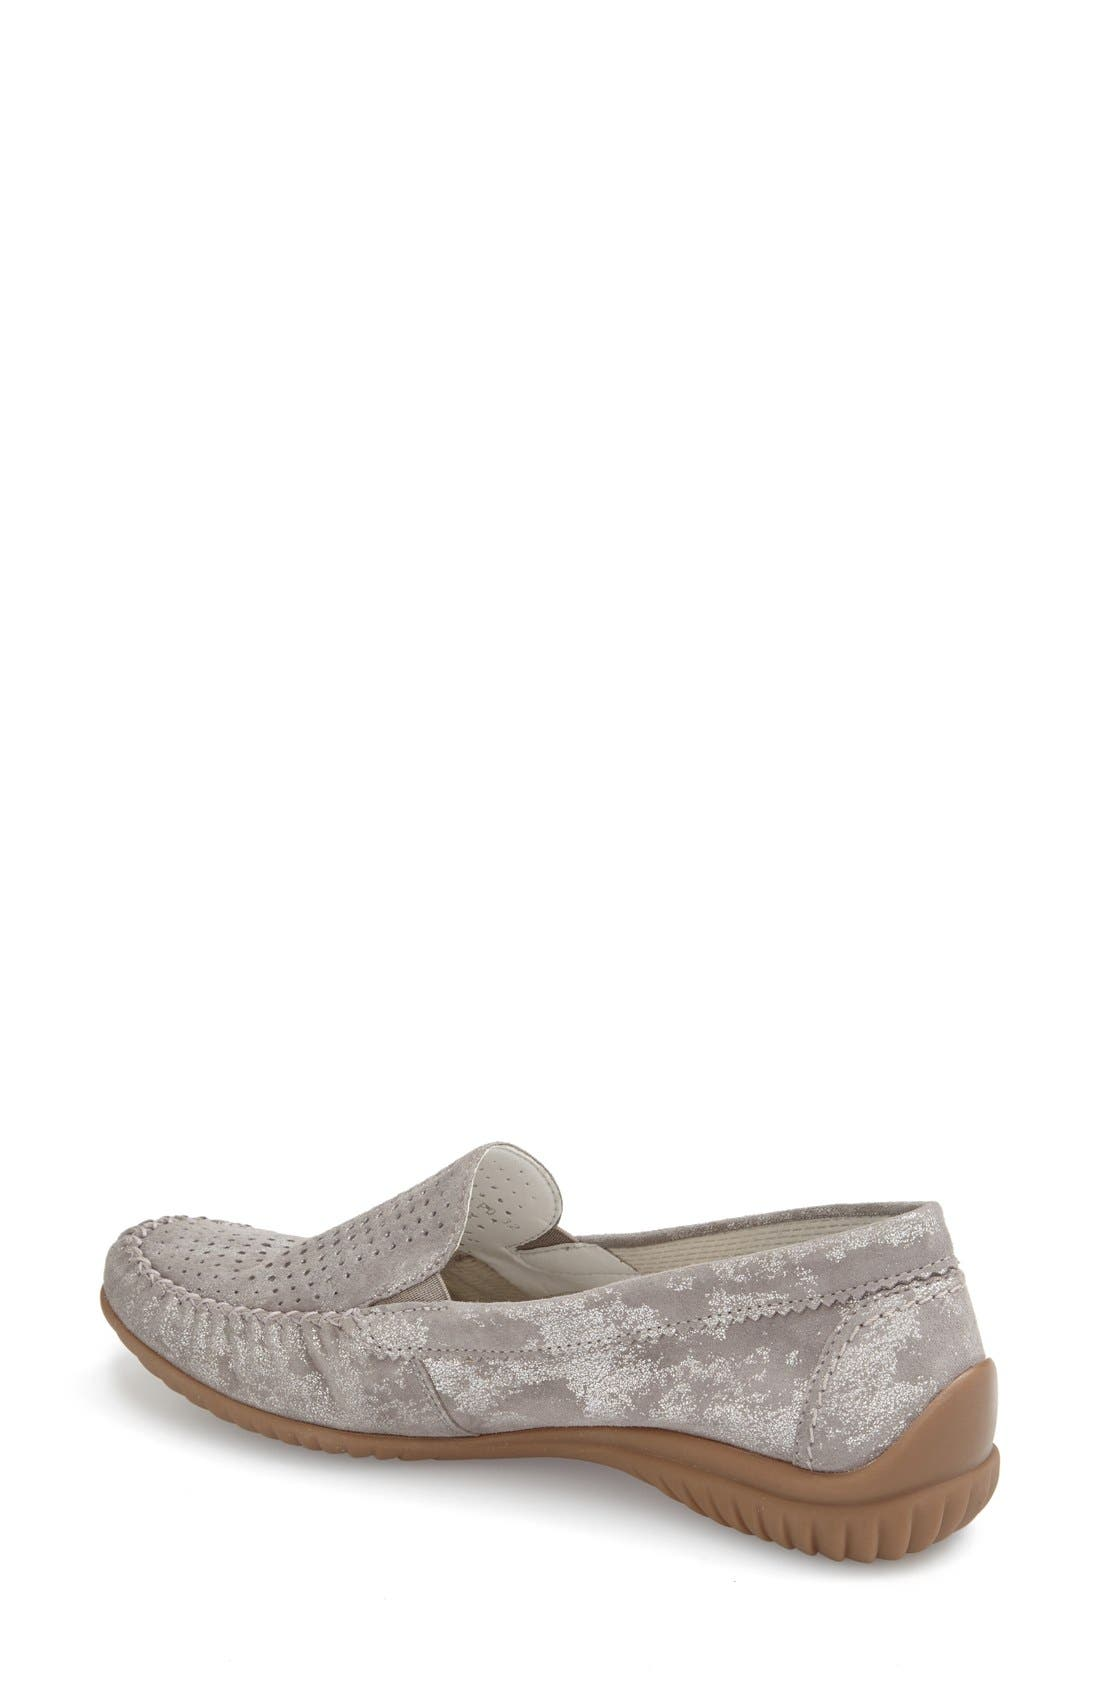 Perforated Loafer,                             Alternate thumbnail 3, color,                             GREY CARUSO LEATHER